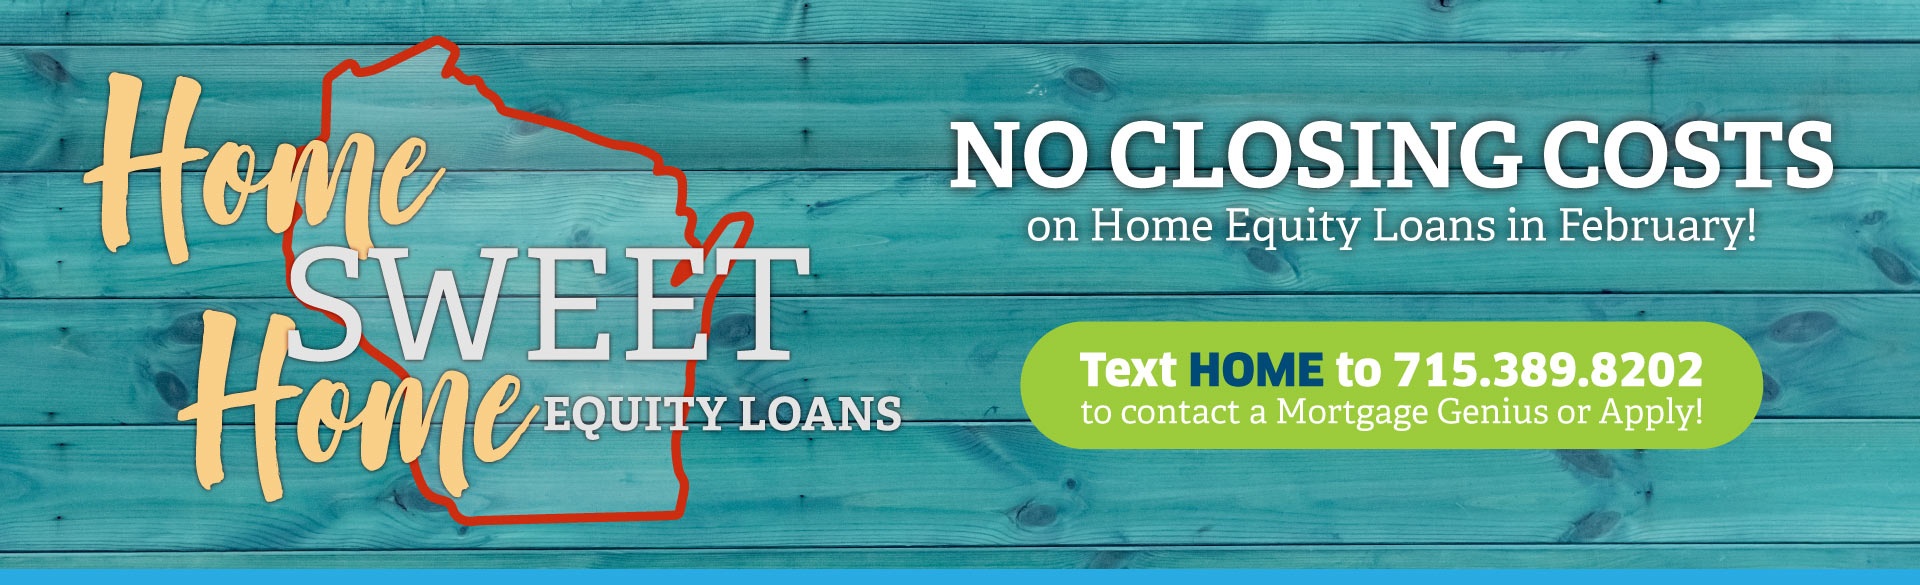 Home Sweet Home | No Closing Costs on Home Equity Loans in the month of February!